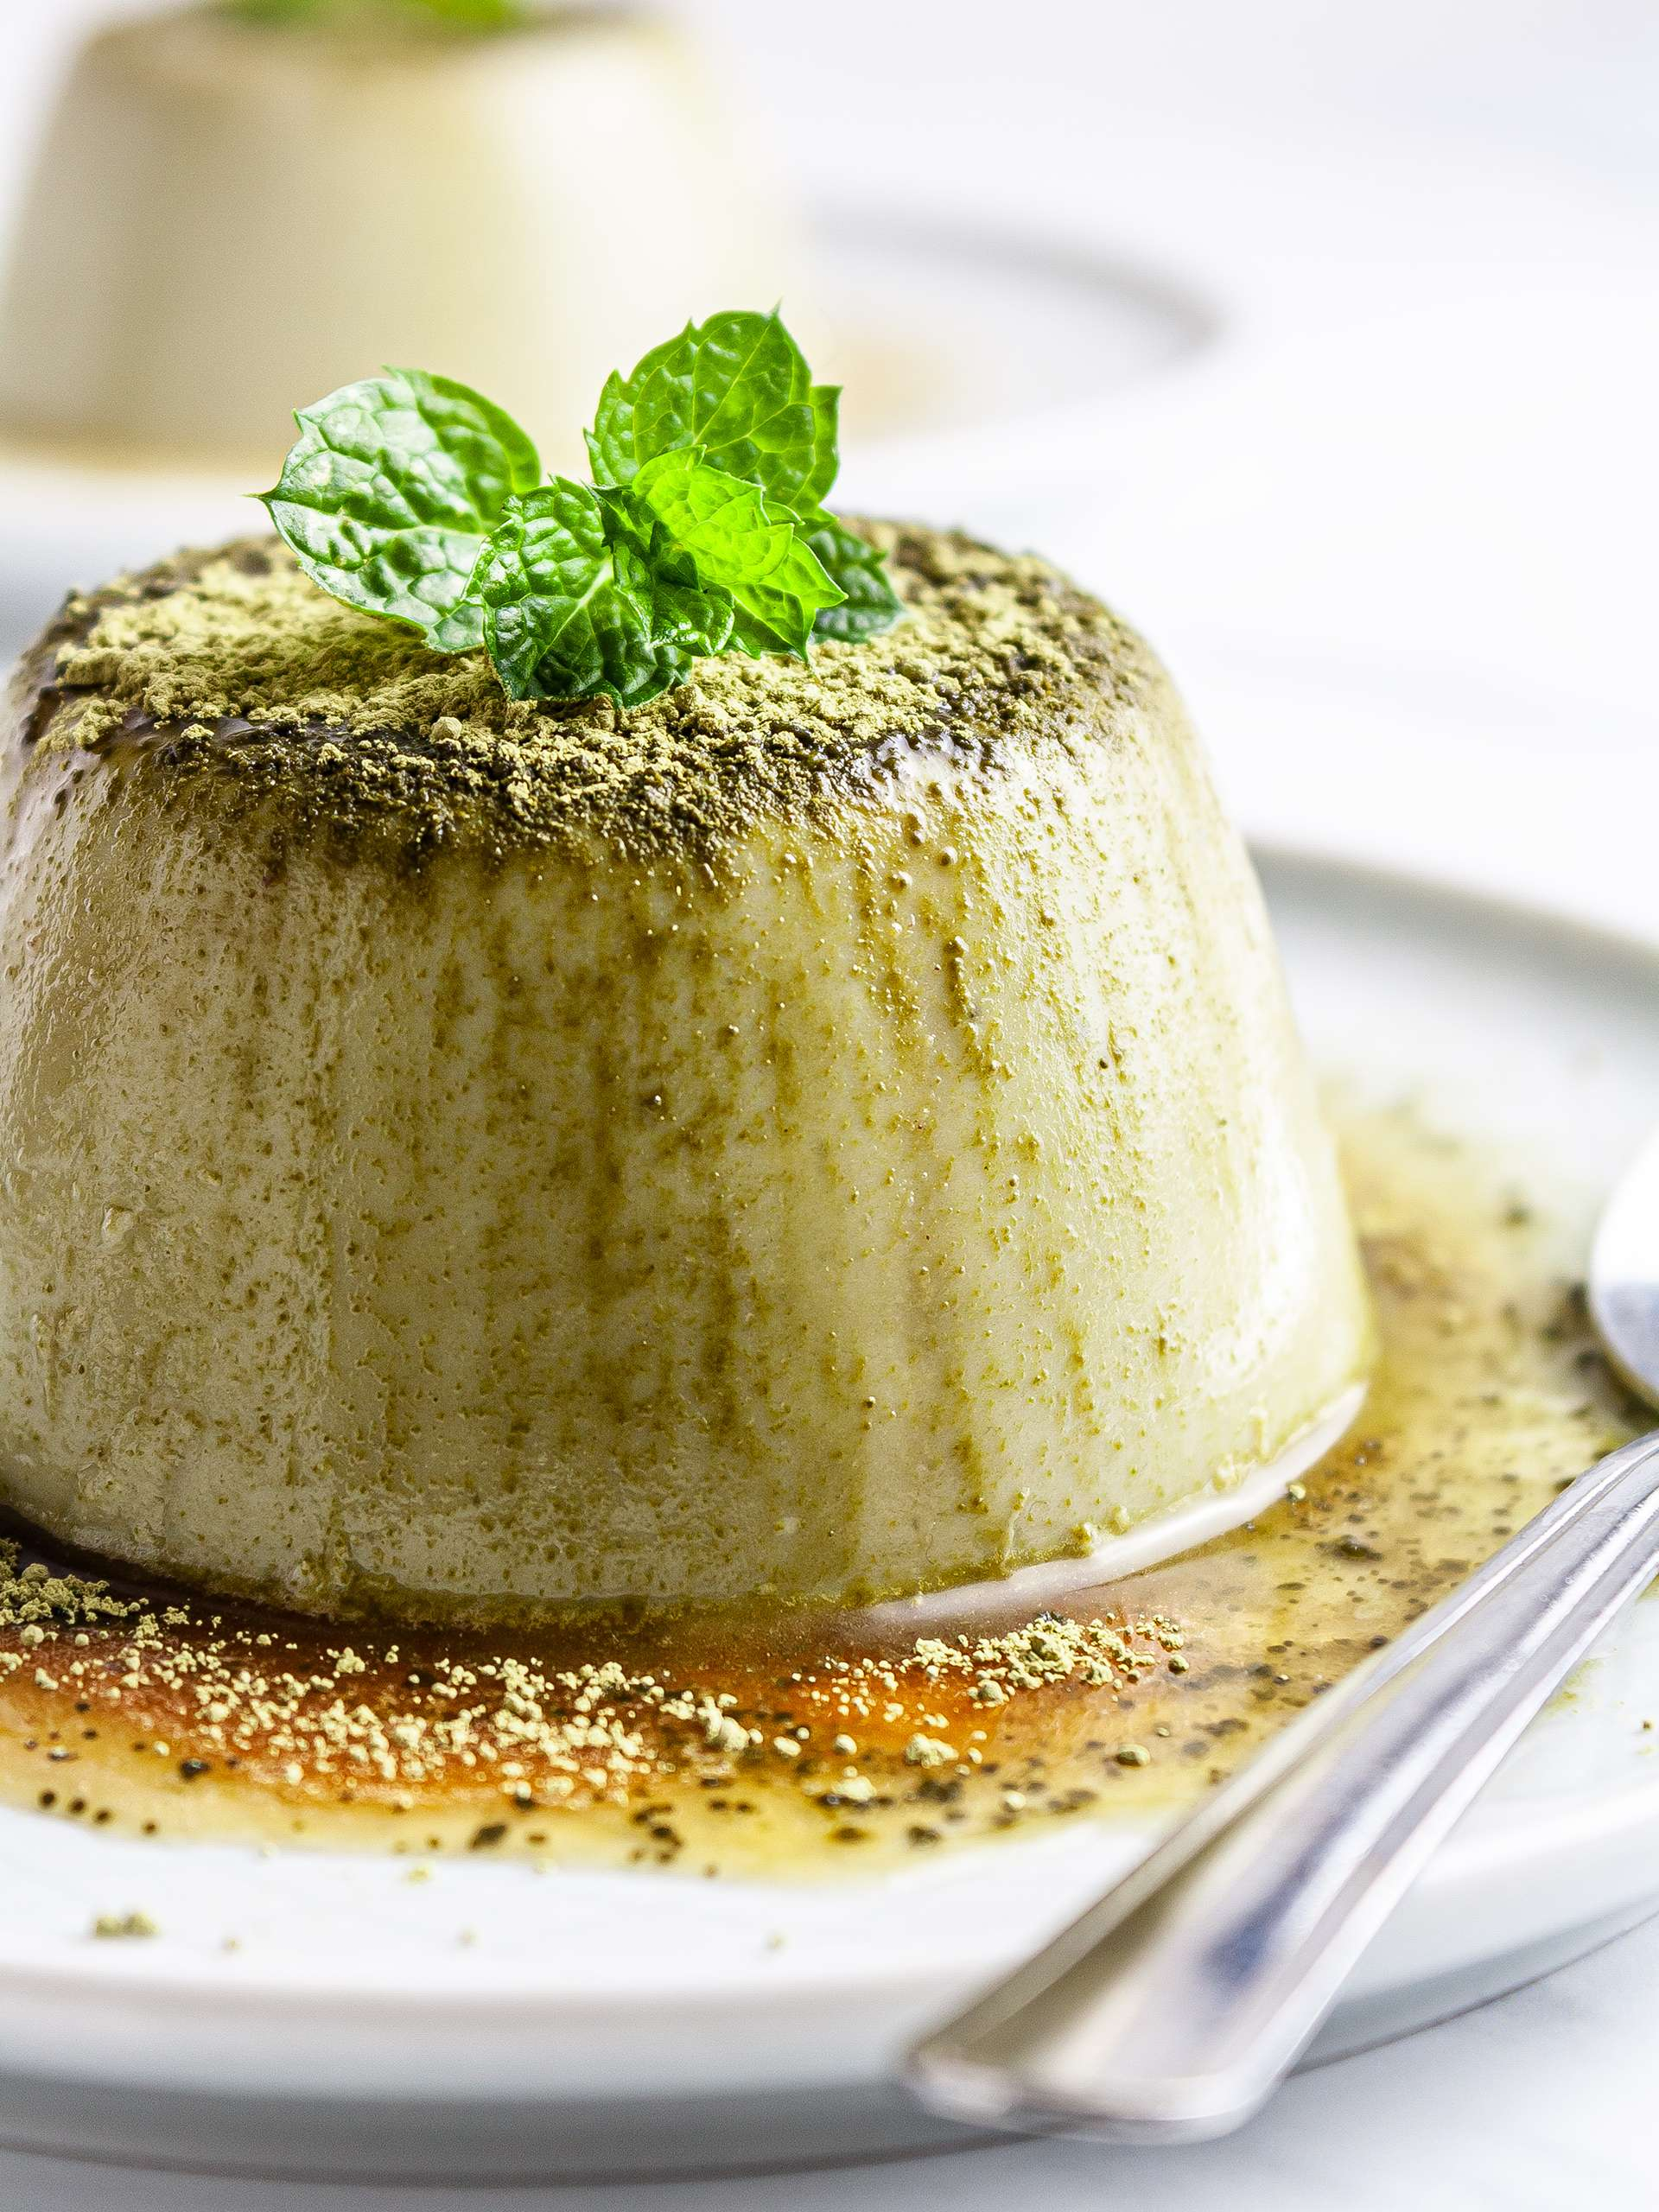 Vegan Matcha Flan with Date Caramel Recipe